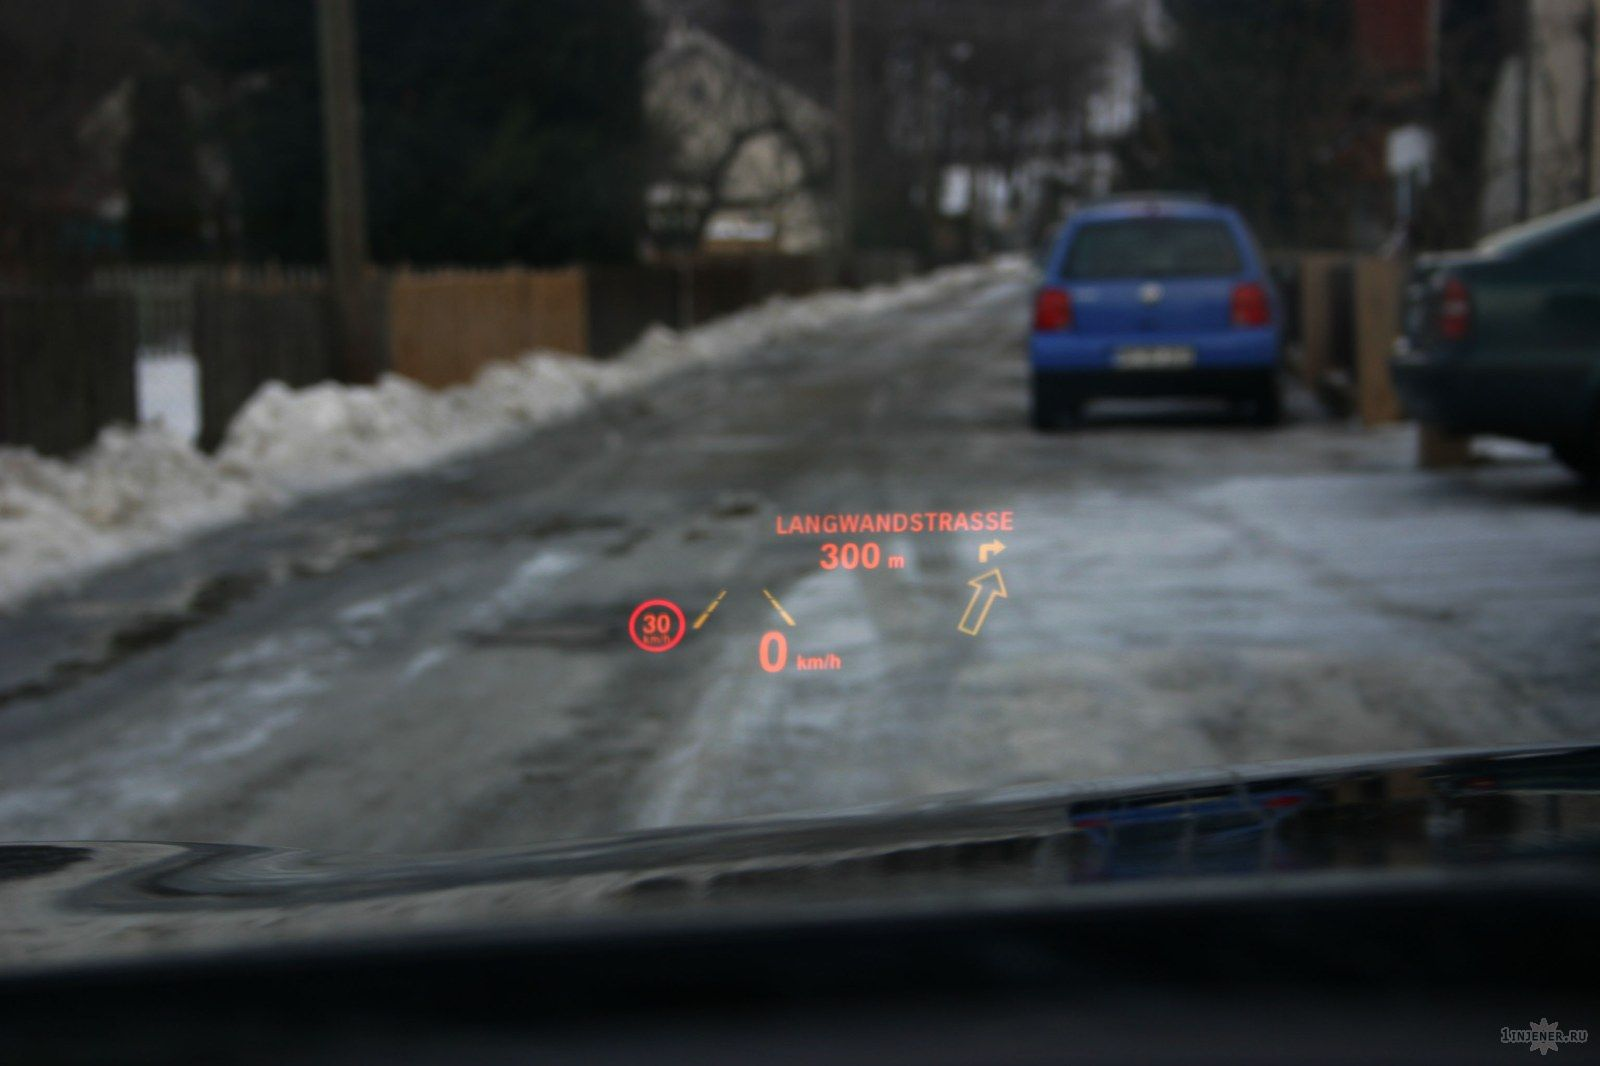 Head-Up Display, HUD.